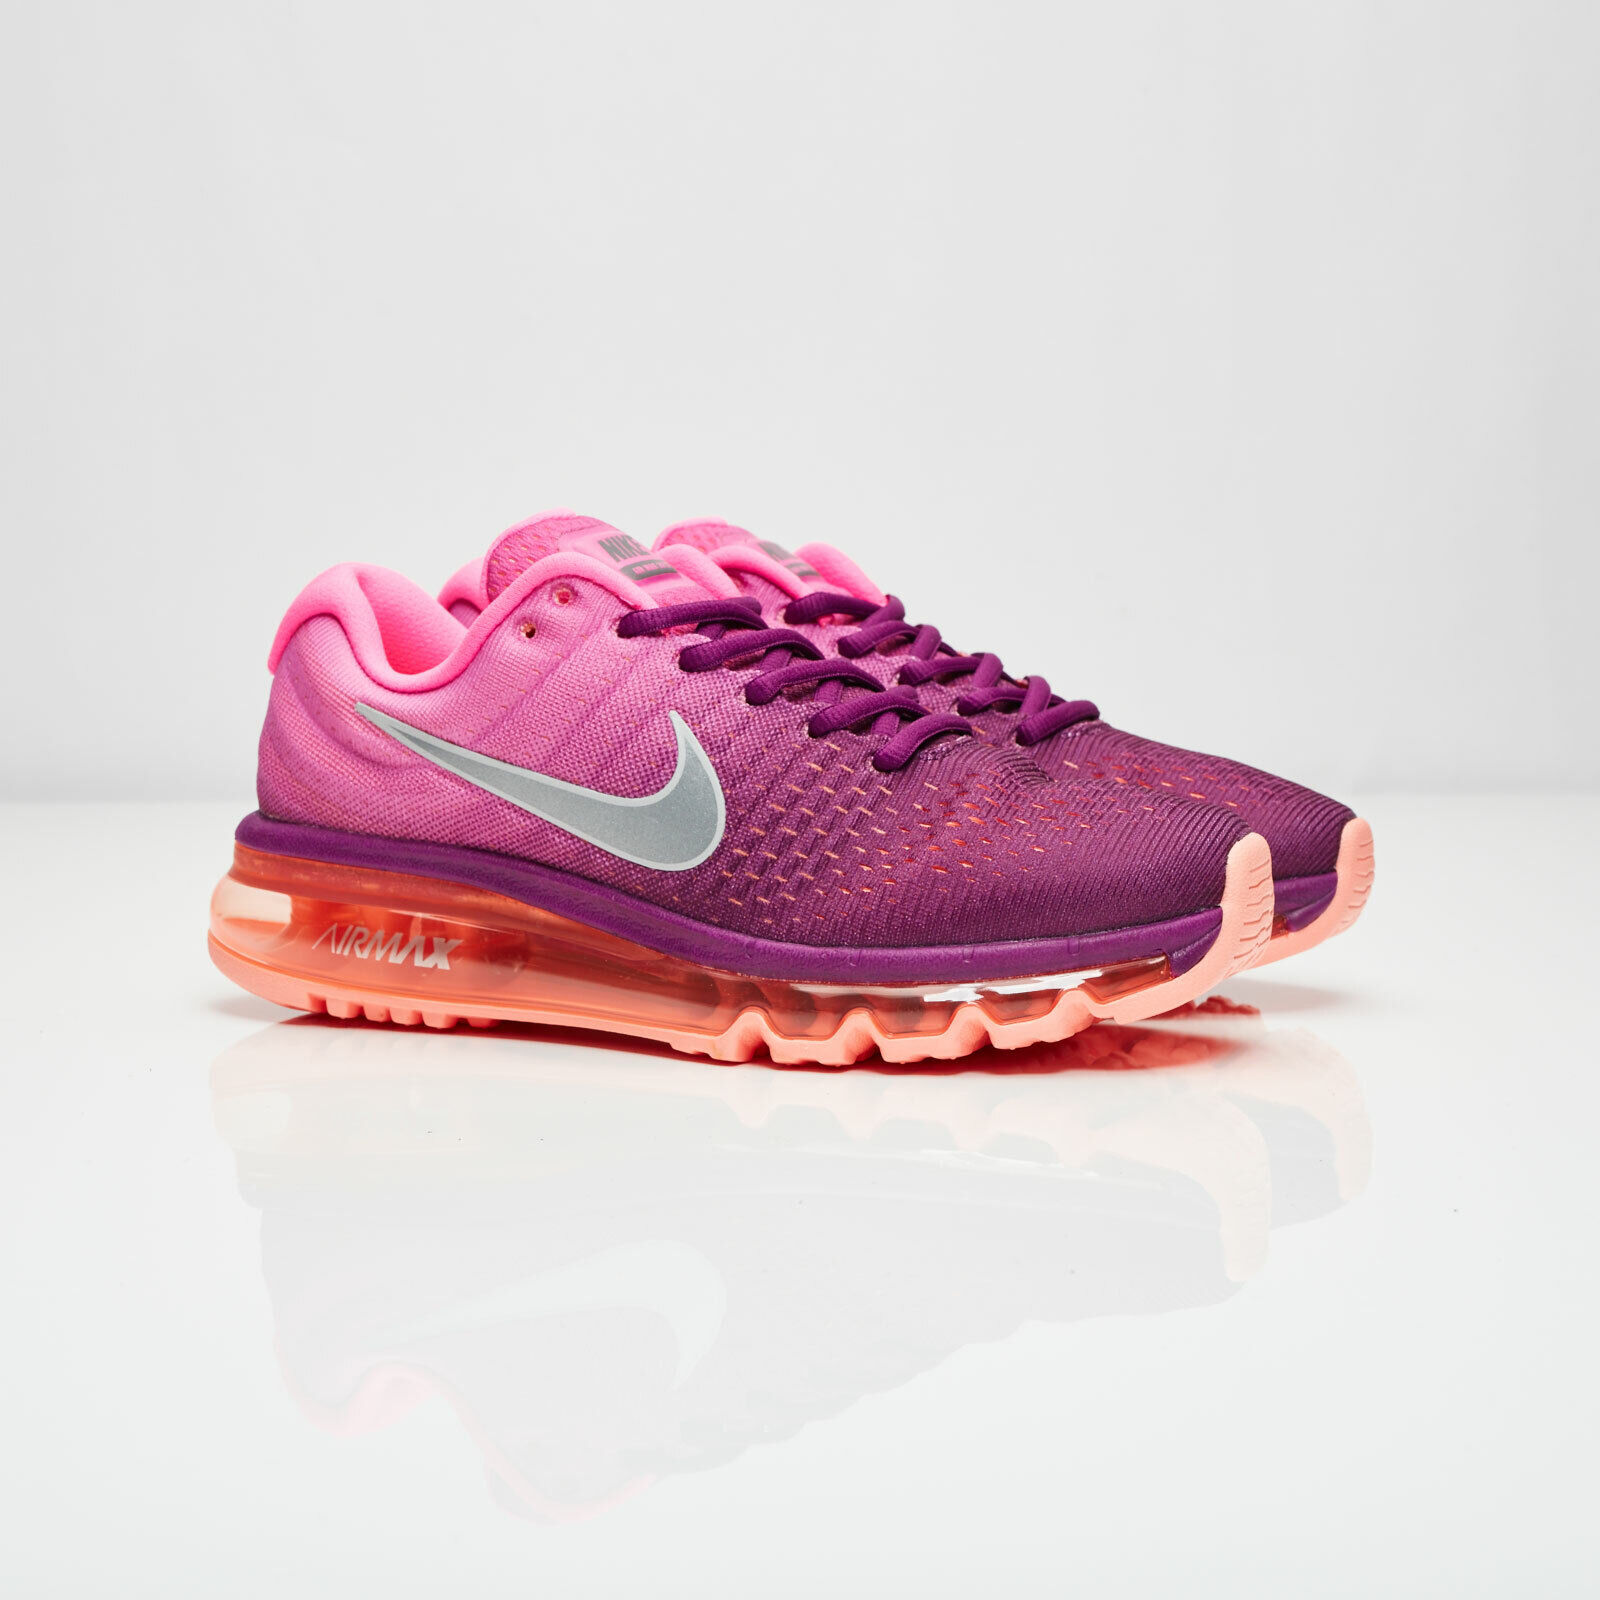 New Women's Nike Air Max 2017 Bright Grape Fire Pink size 11.5 849560 502